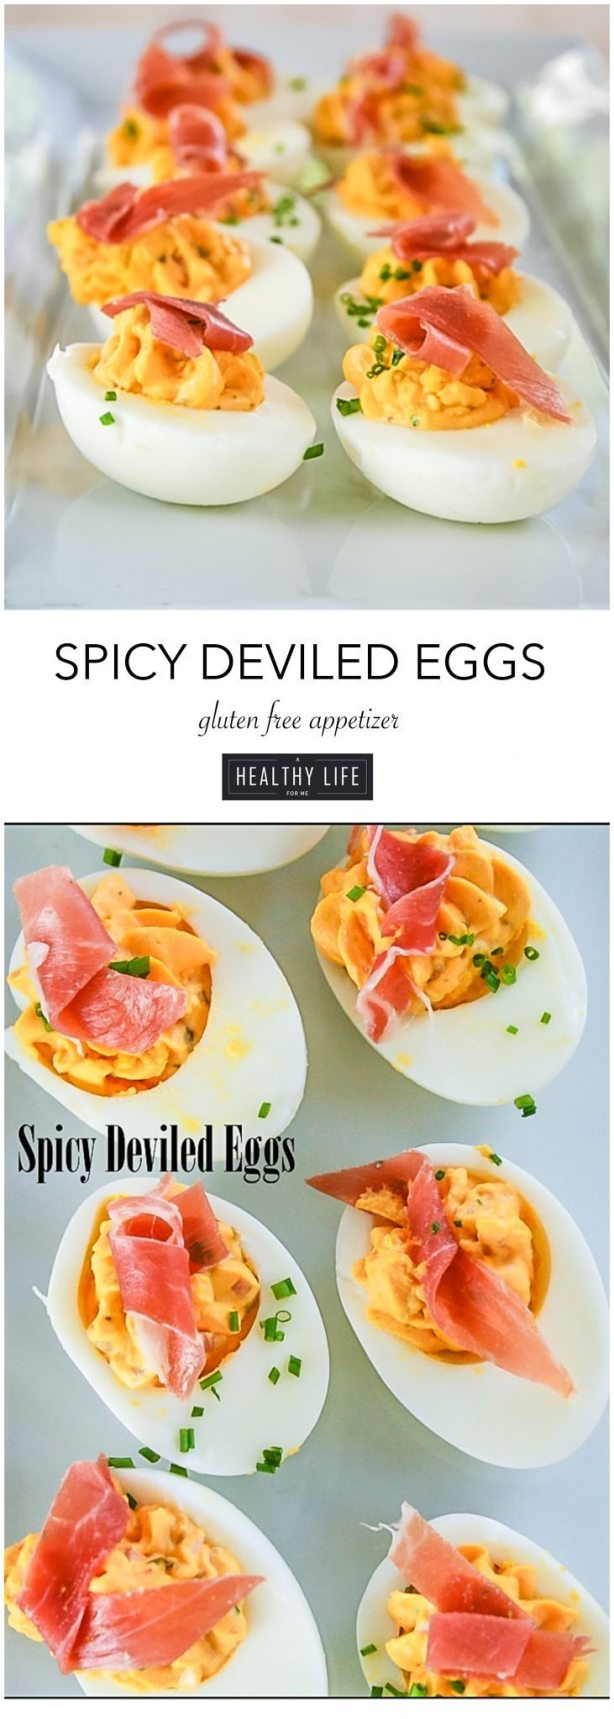 spicy deviled egg recipe | ahealthylifeforme.com